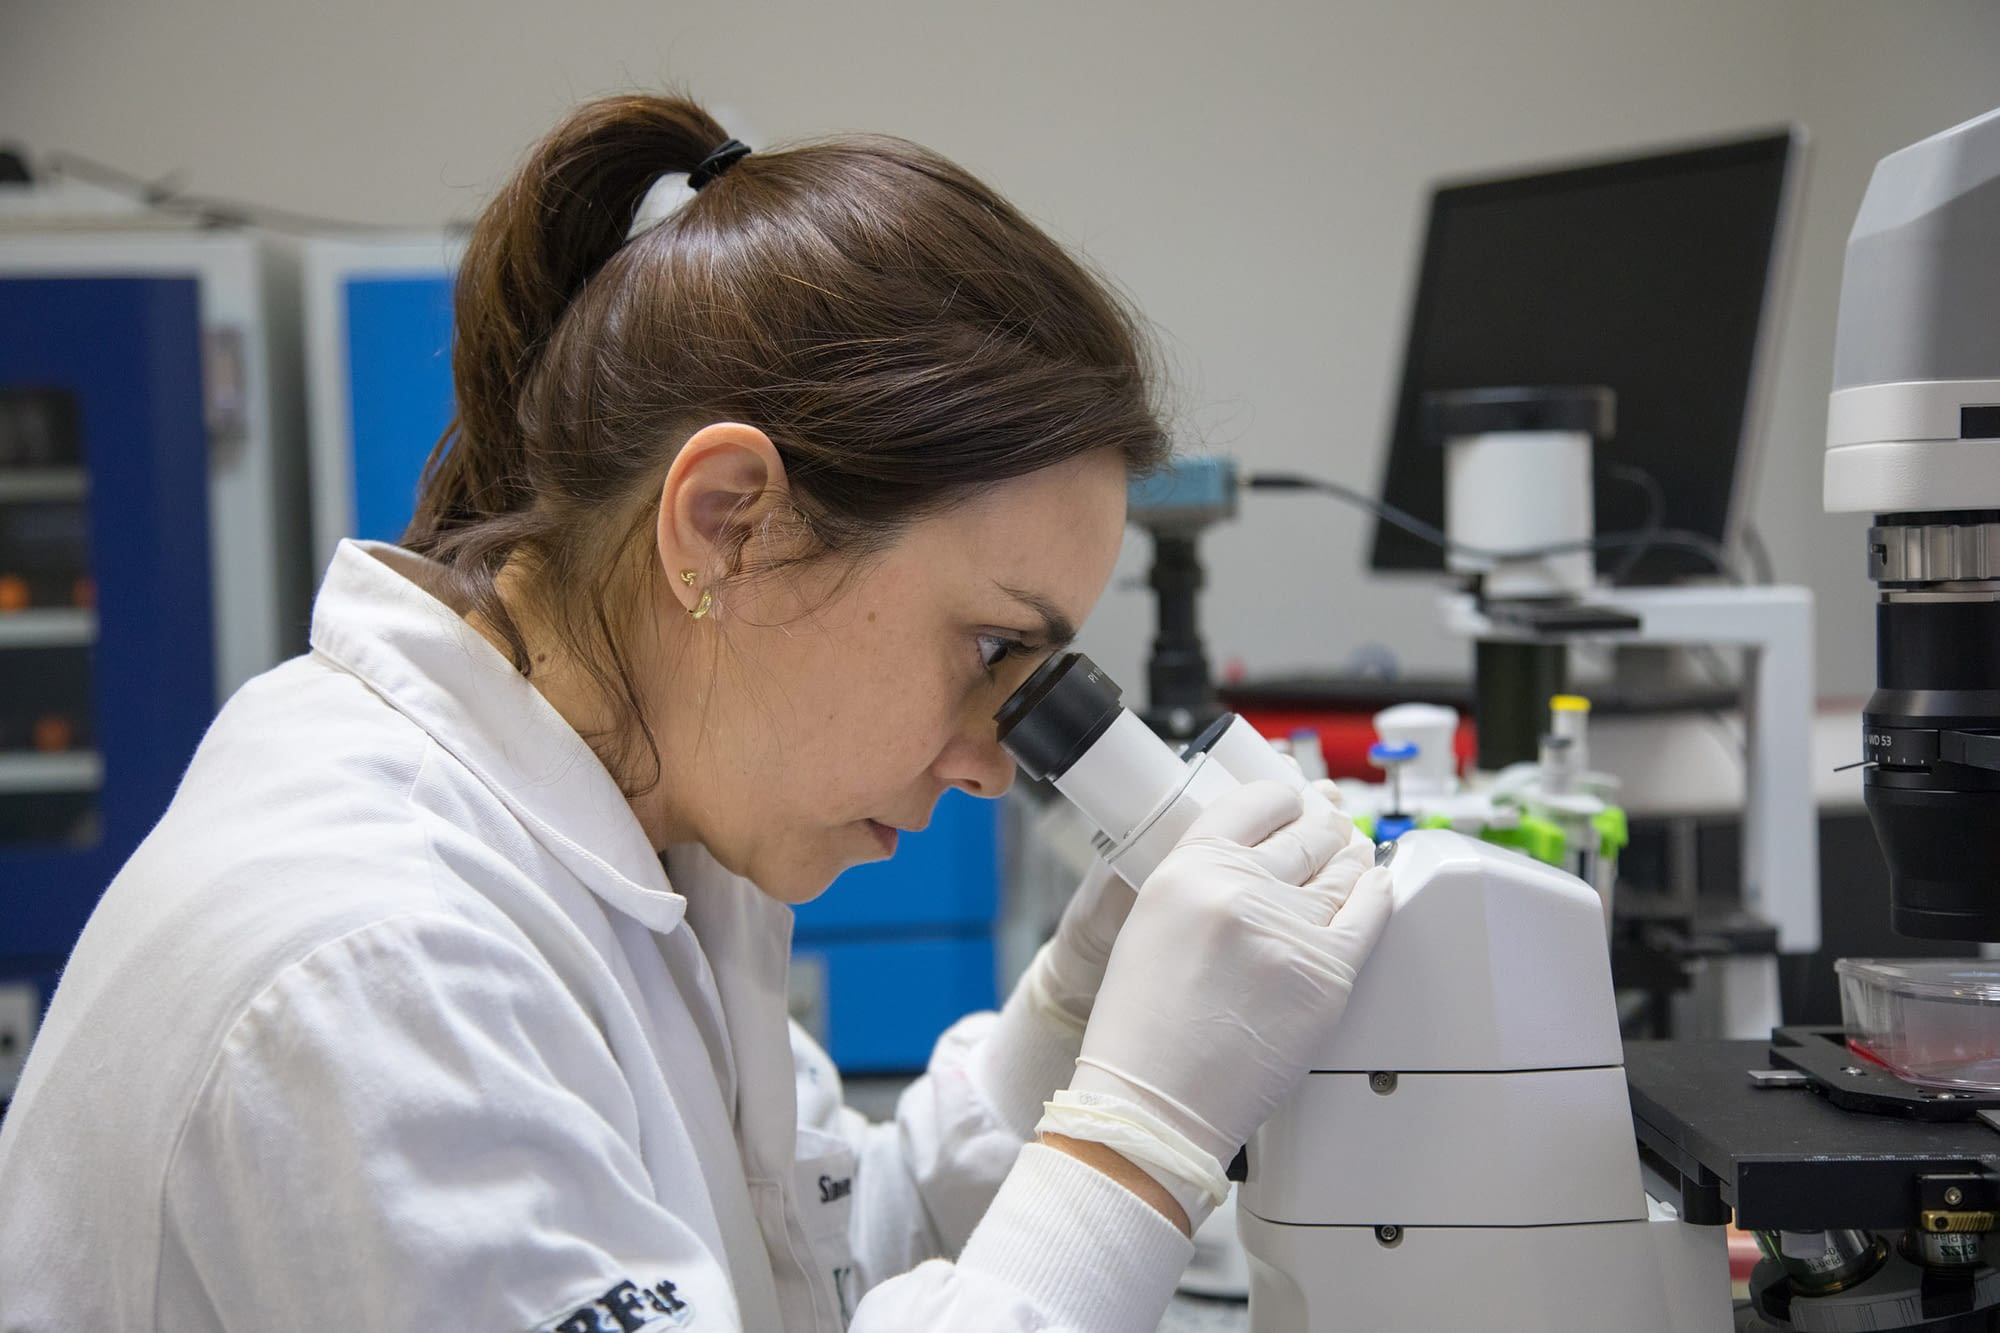 Female researcher looking in a microscope